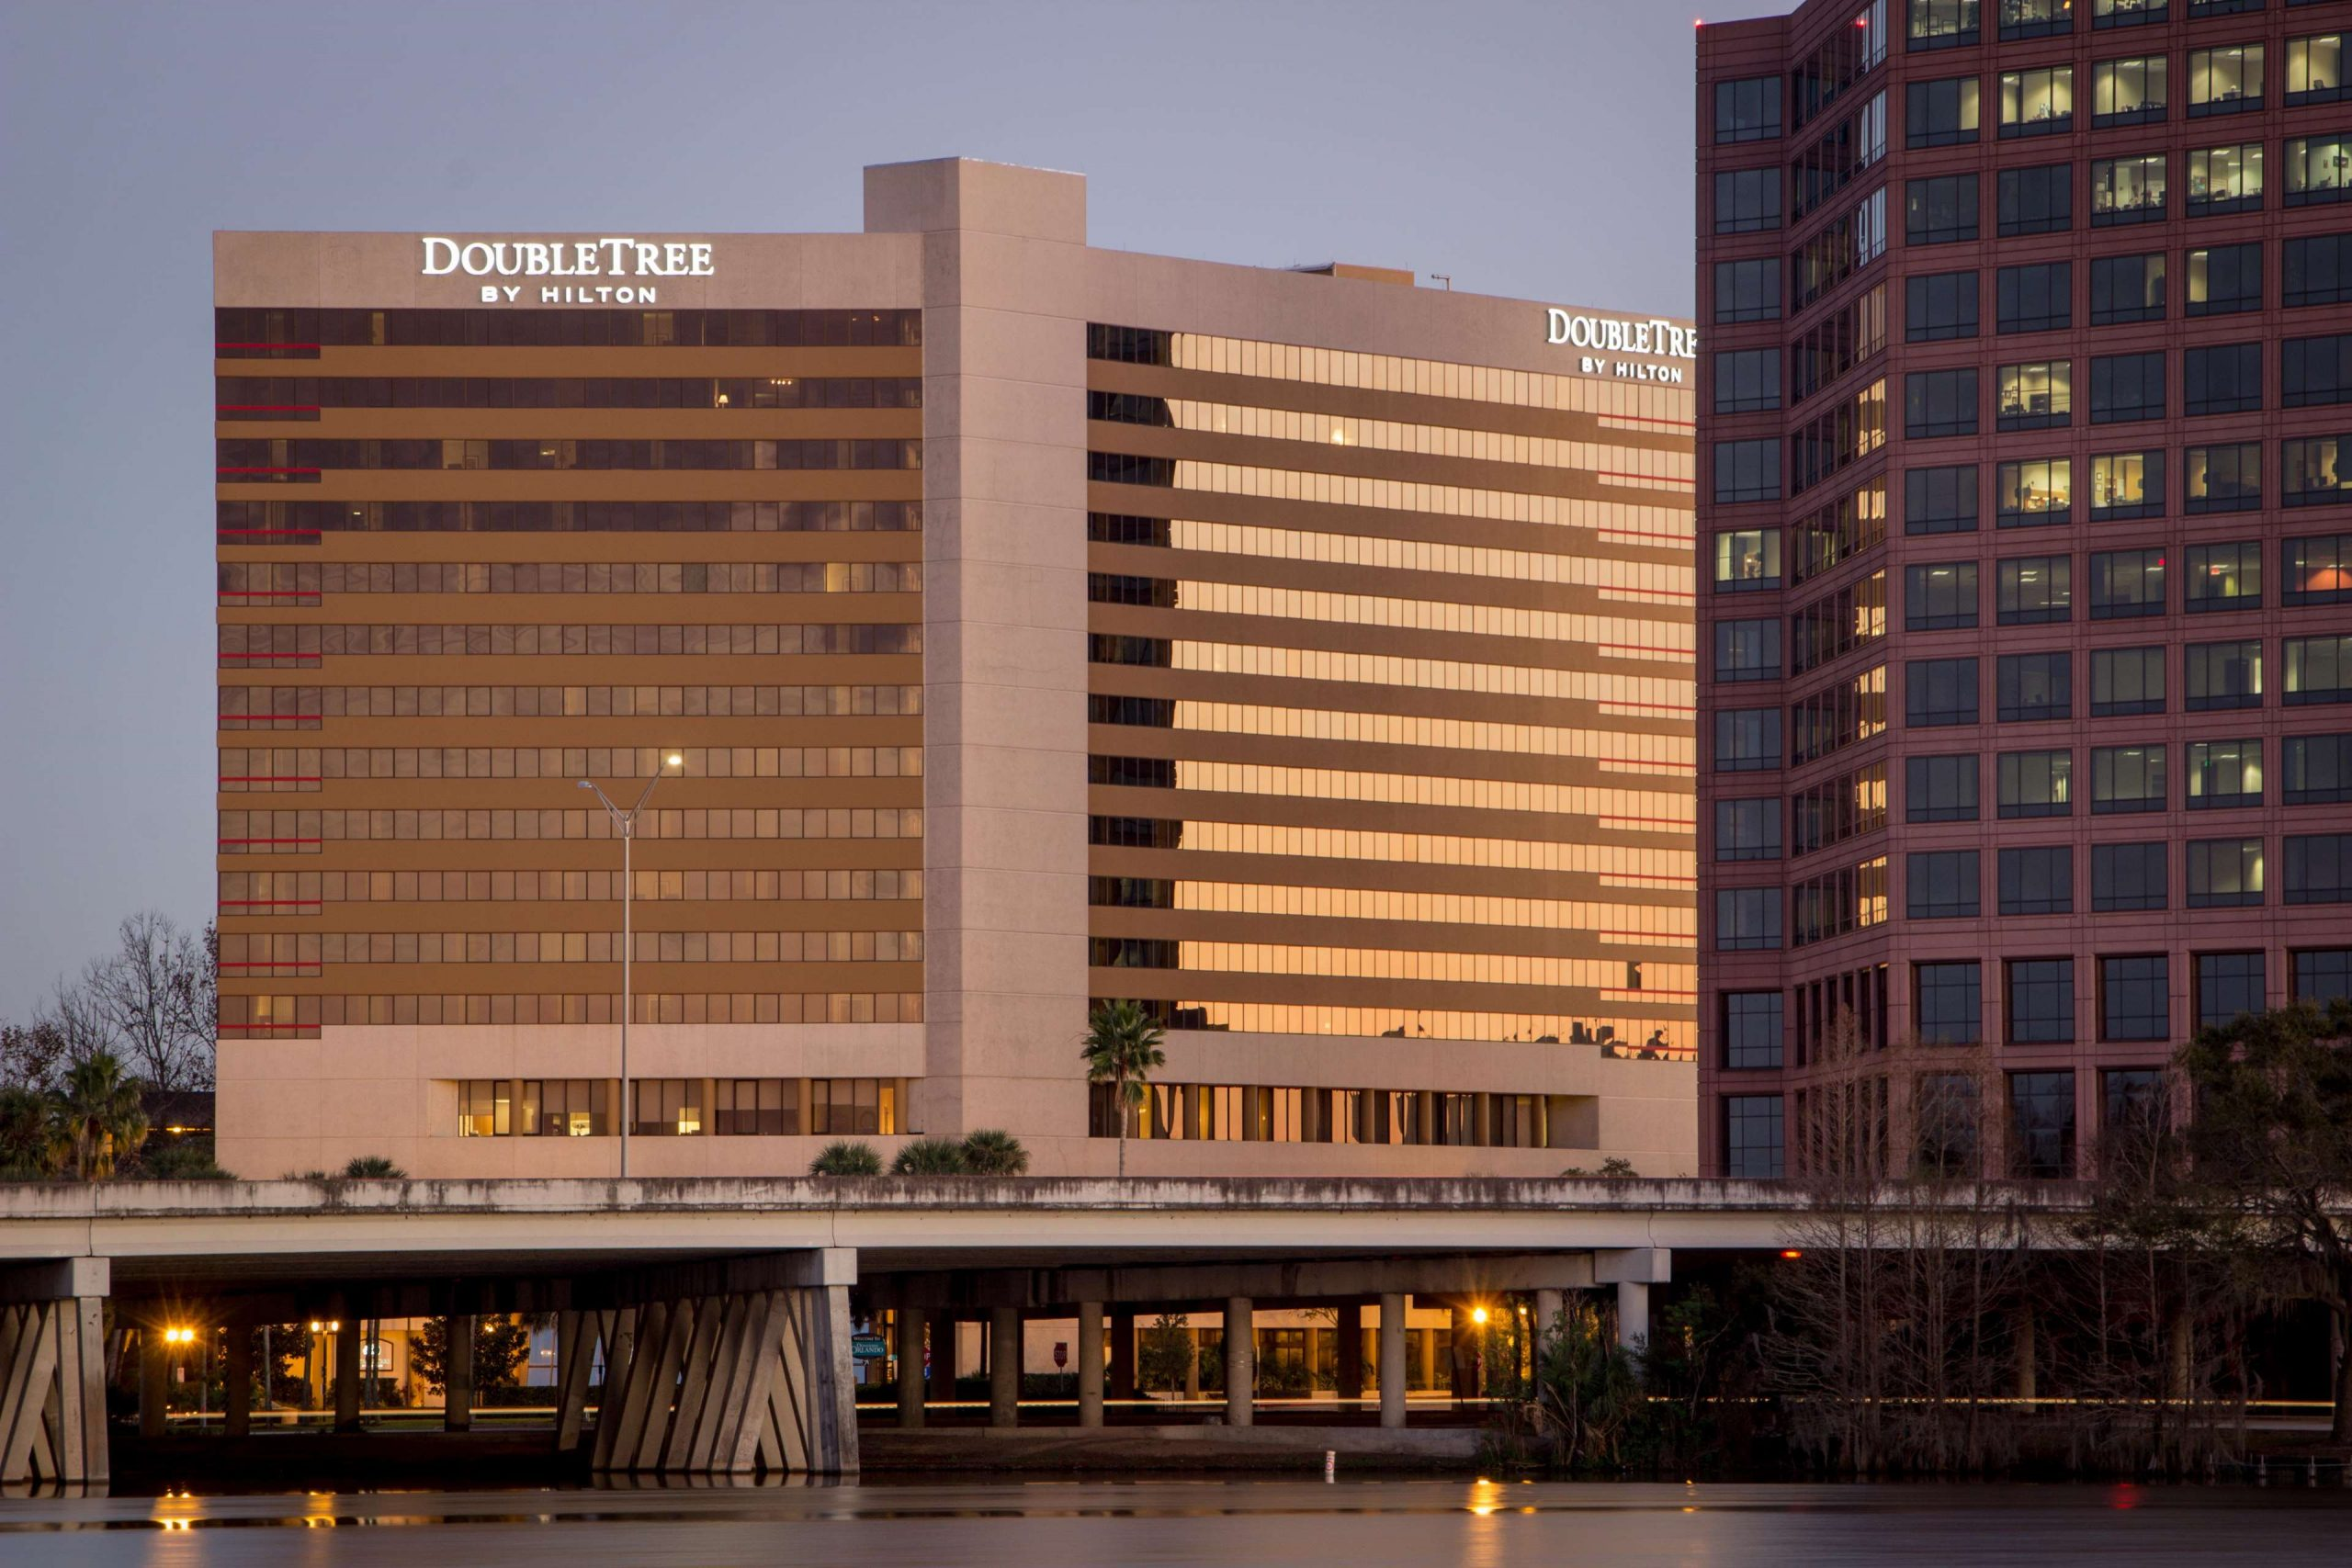 Hotels to Stay in Downtown Orlando - DoubleTree by Hilton Orlando Downtown